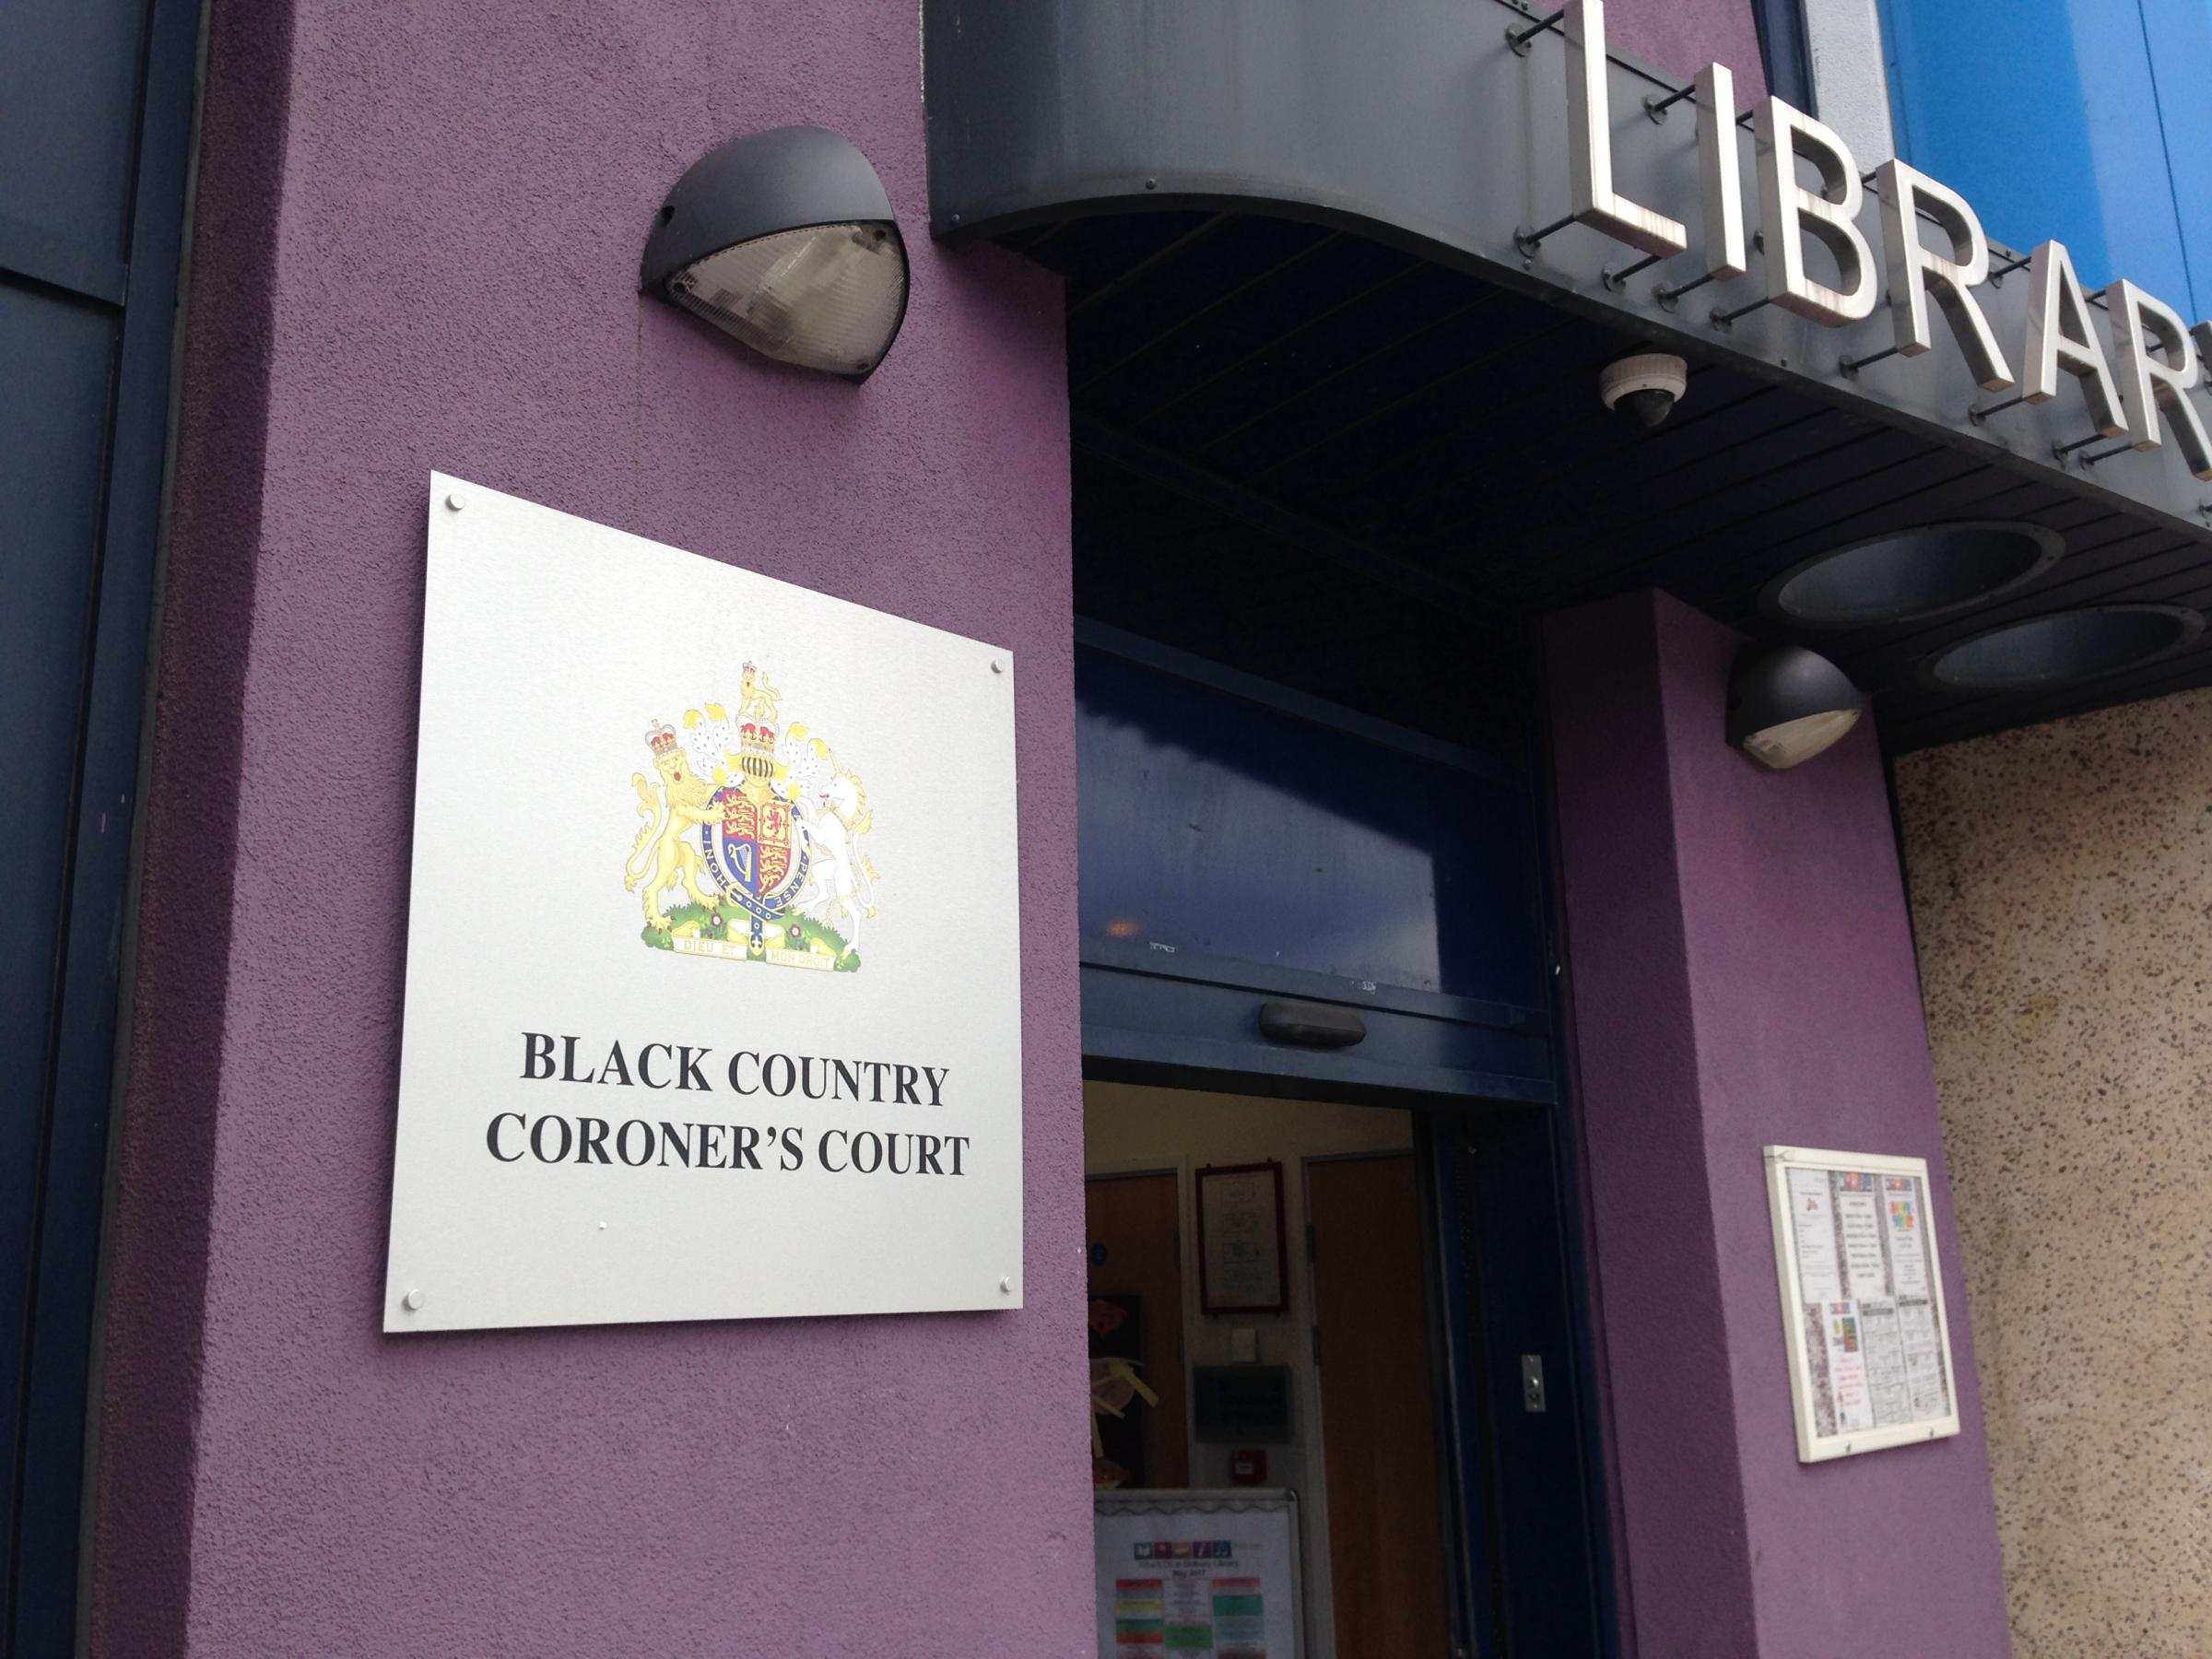 Black Country Coroner's Court, Oldbury